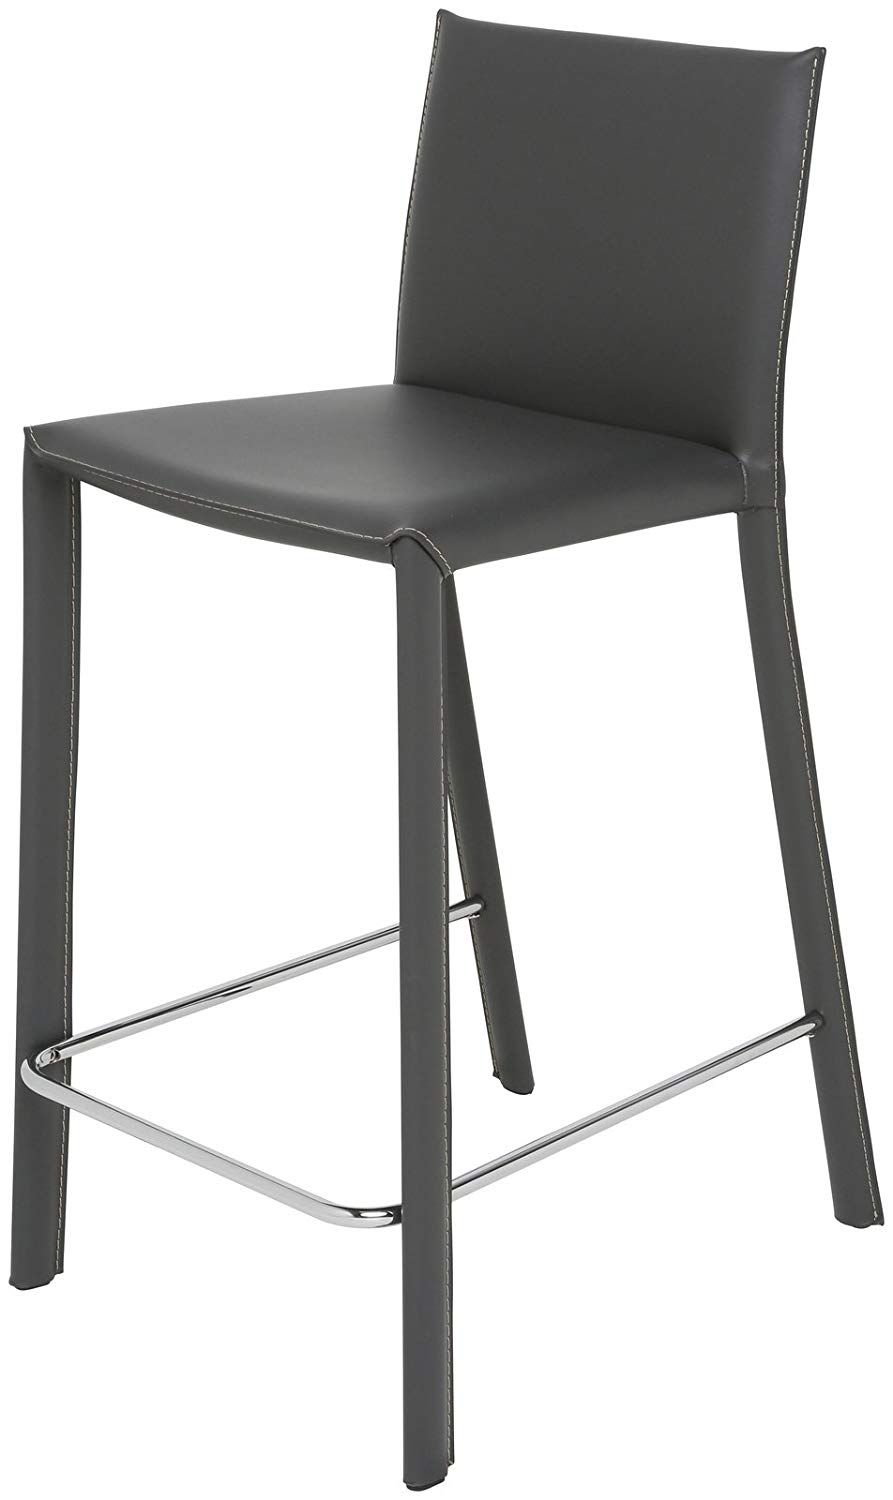 Bridget Counter Stool In Grey Leather By Nuevo Hgaf338